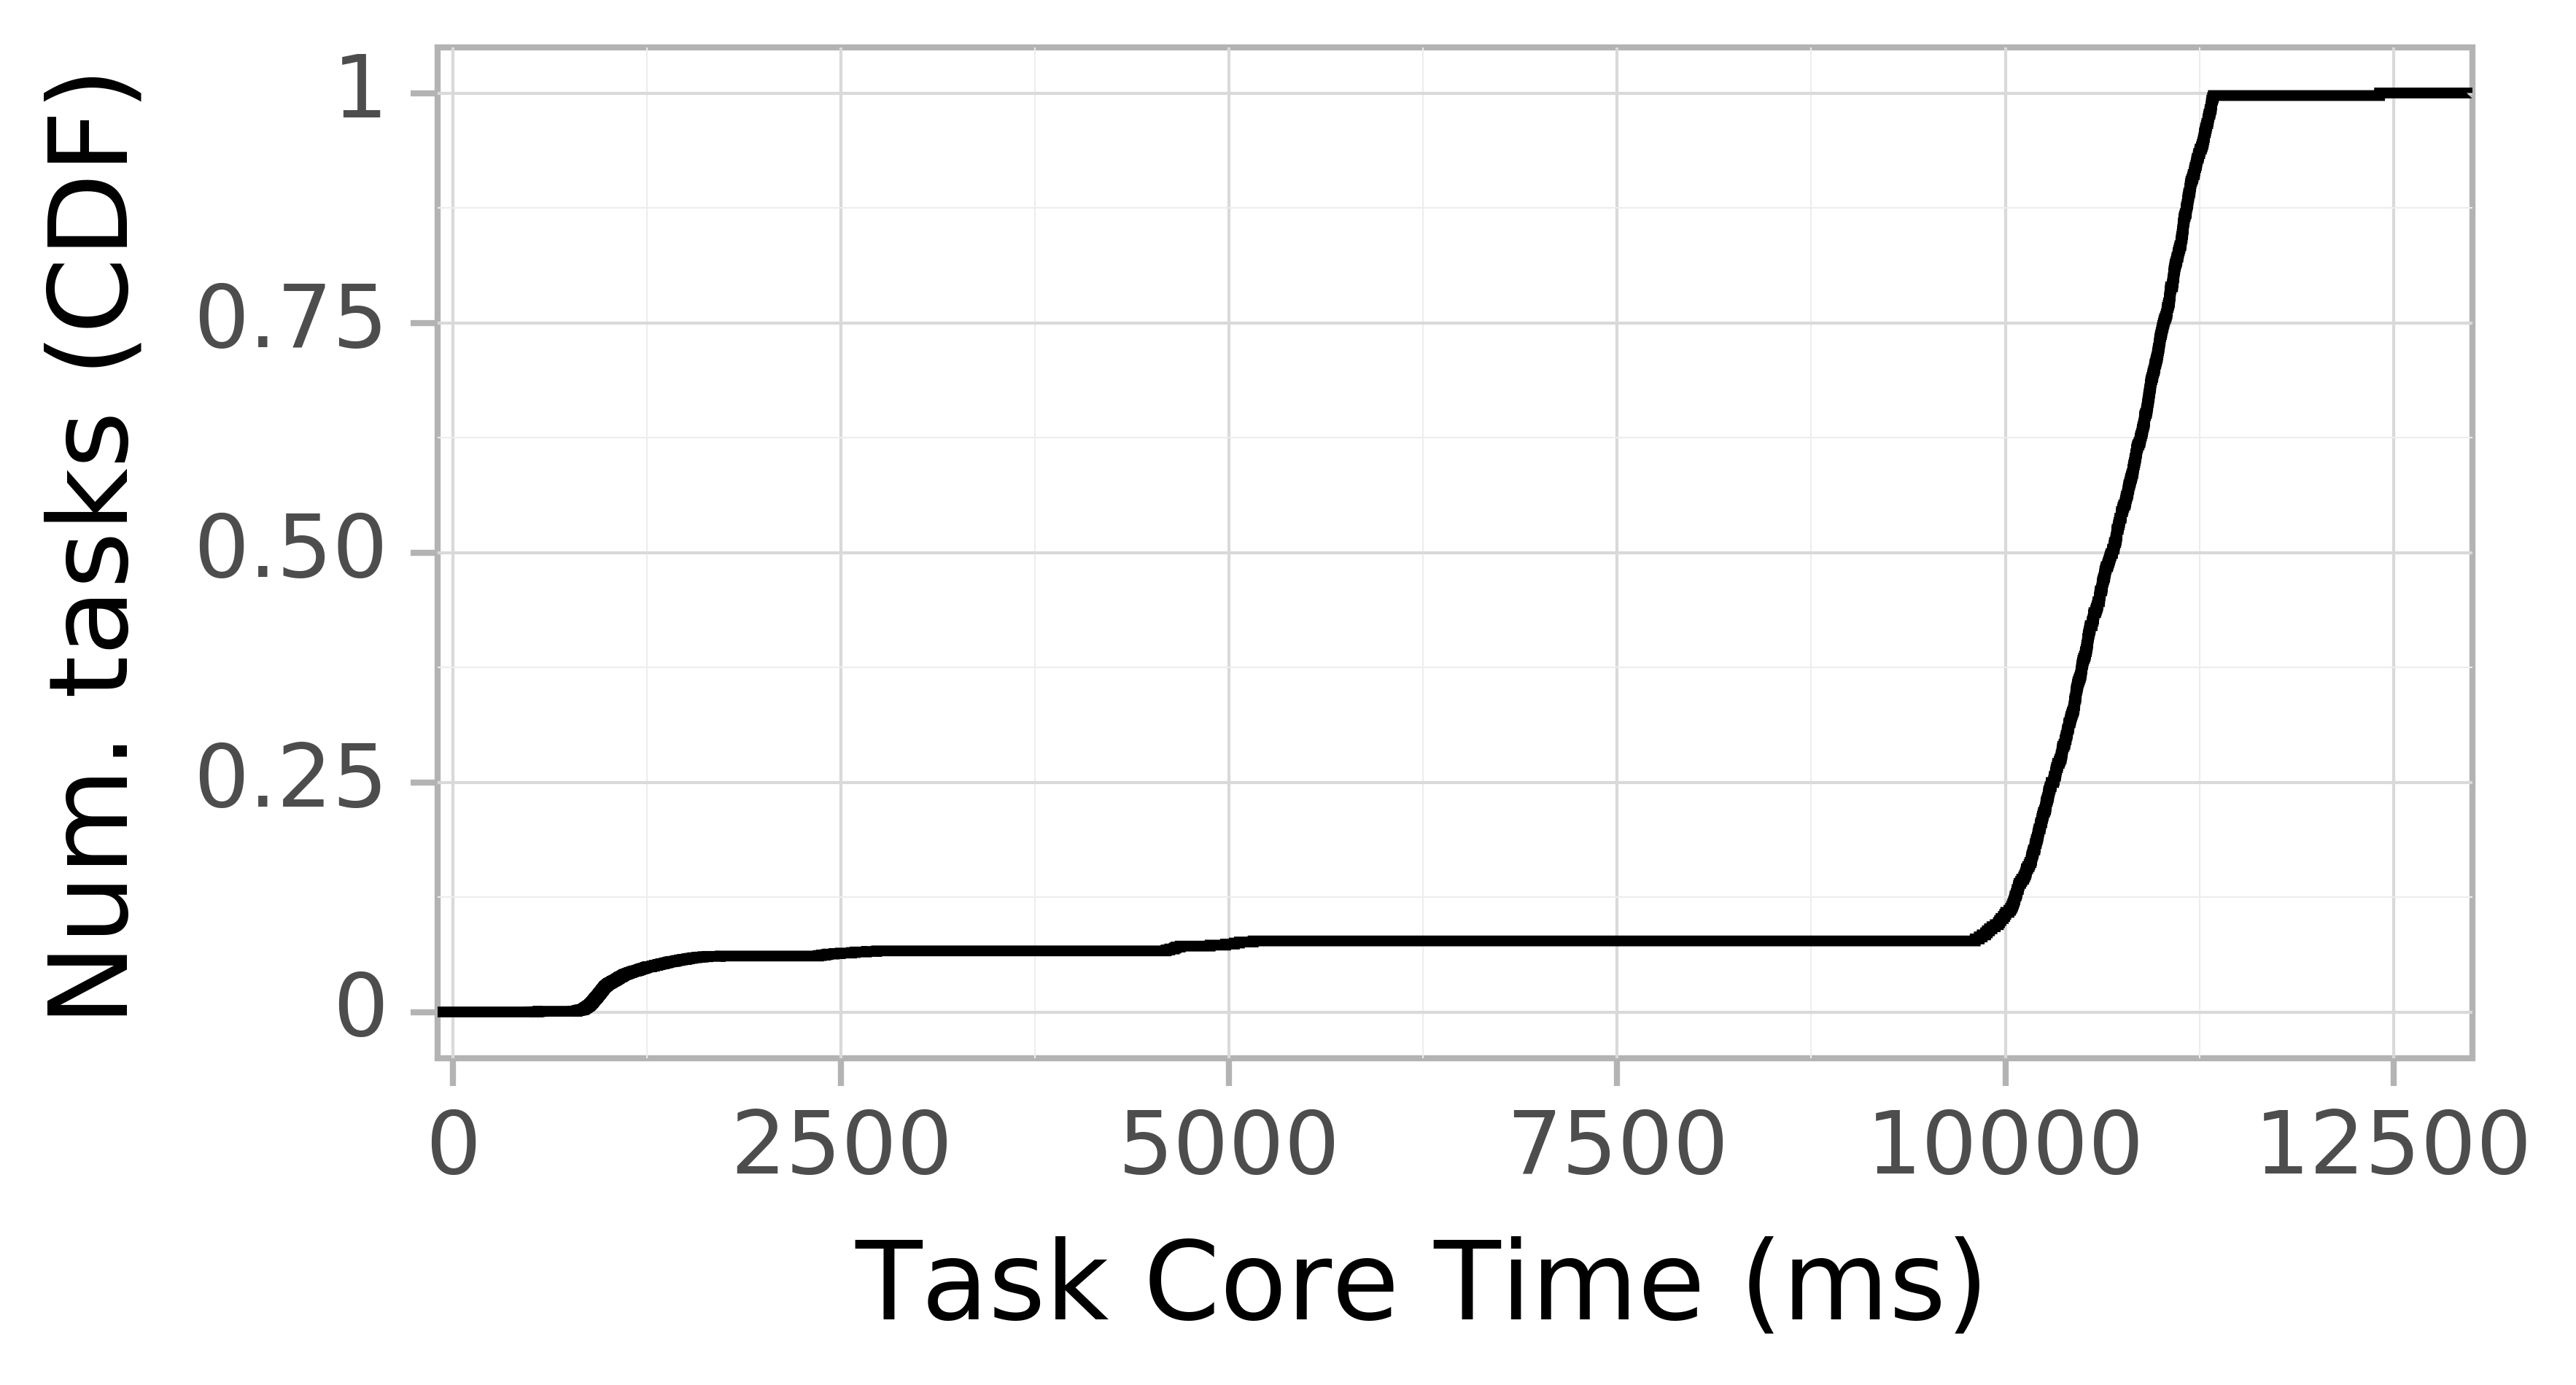 task resource time CDF graph for the askalon-new_ee48 trace.